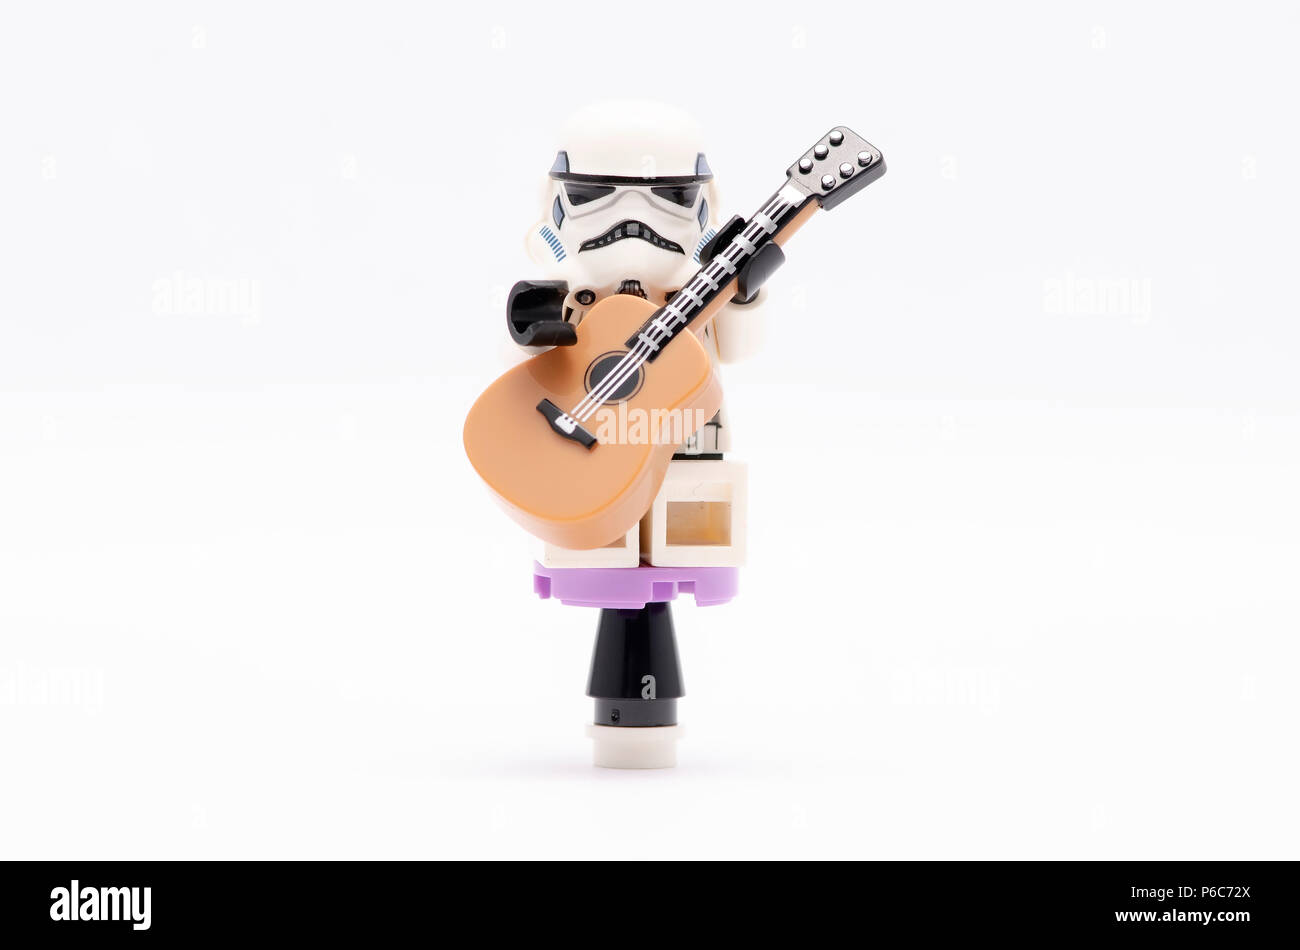 guitar playing chair stretch dining covers mini figure of storm trooper sitting on lego minifigures are manufactured by the group